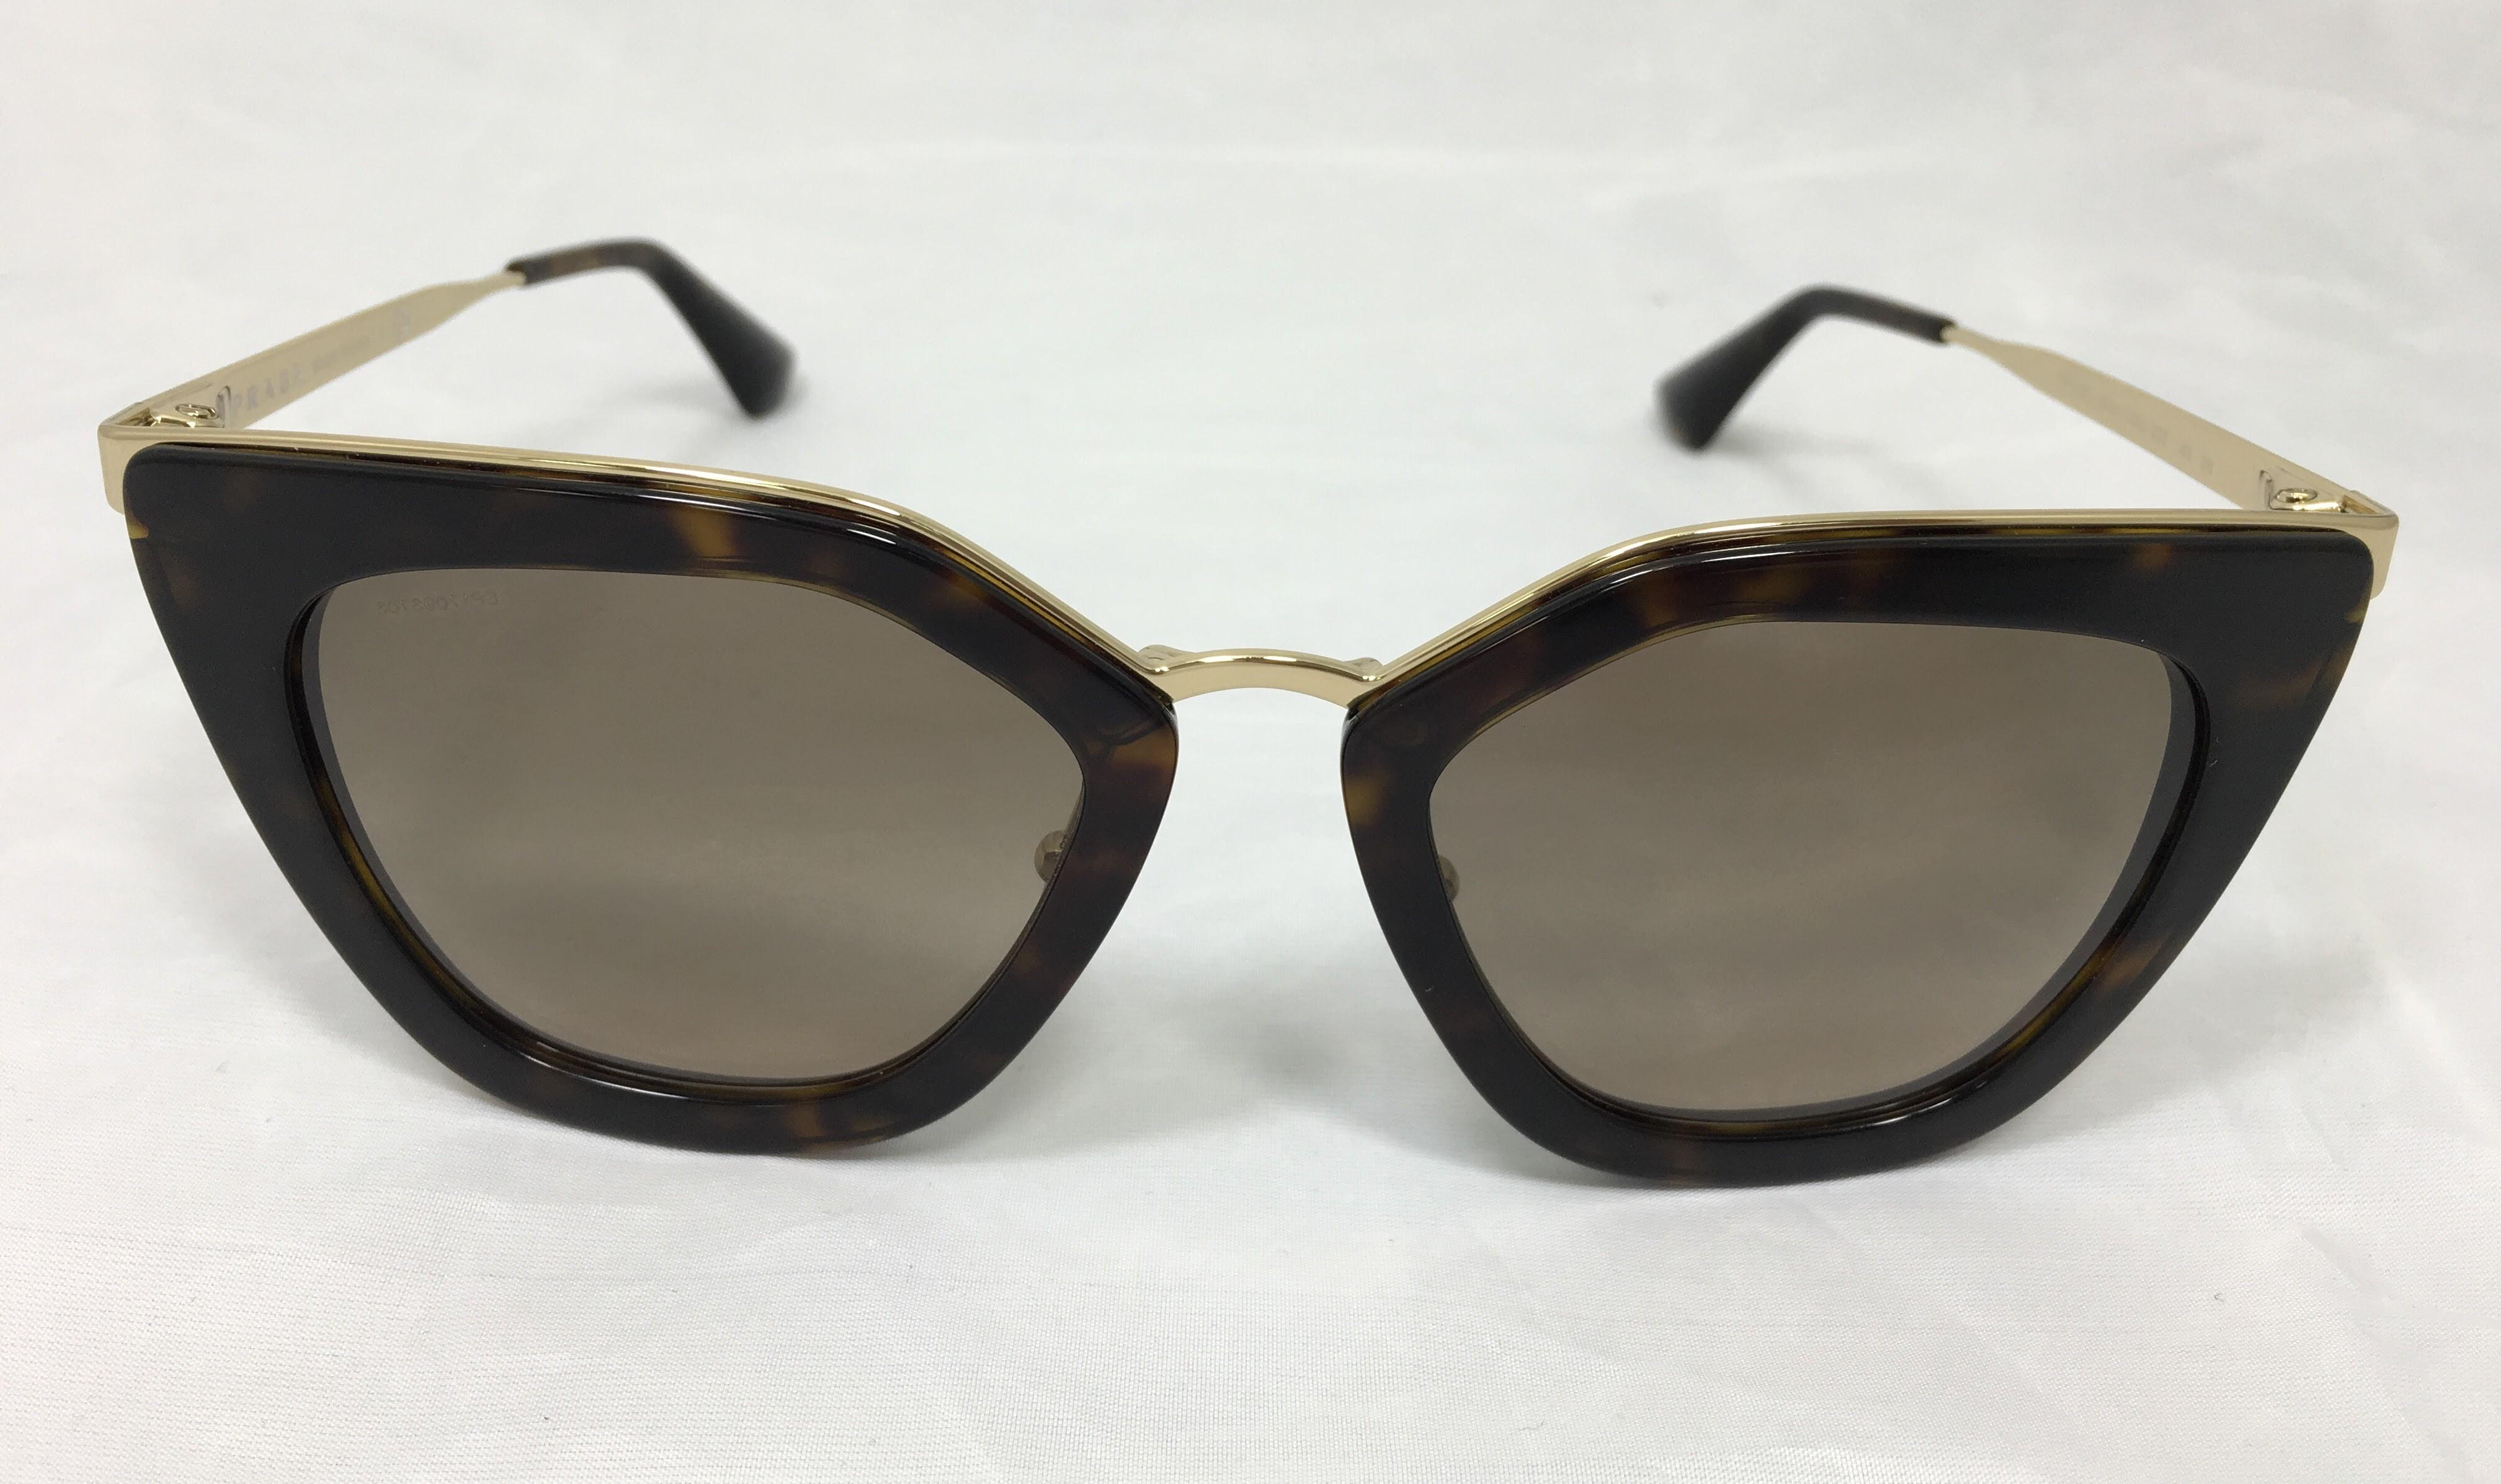 69a42adac3042 ... low price prada cat eye tortoise prada sunglasses spr 53s 2au 3d0 52  12680 a7177 ...